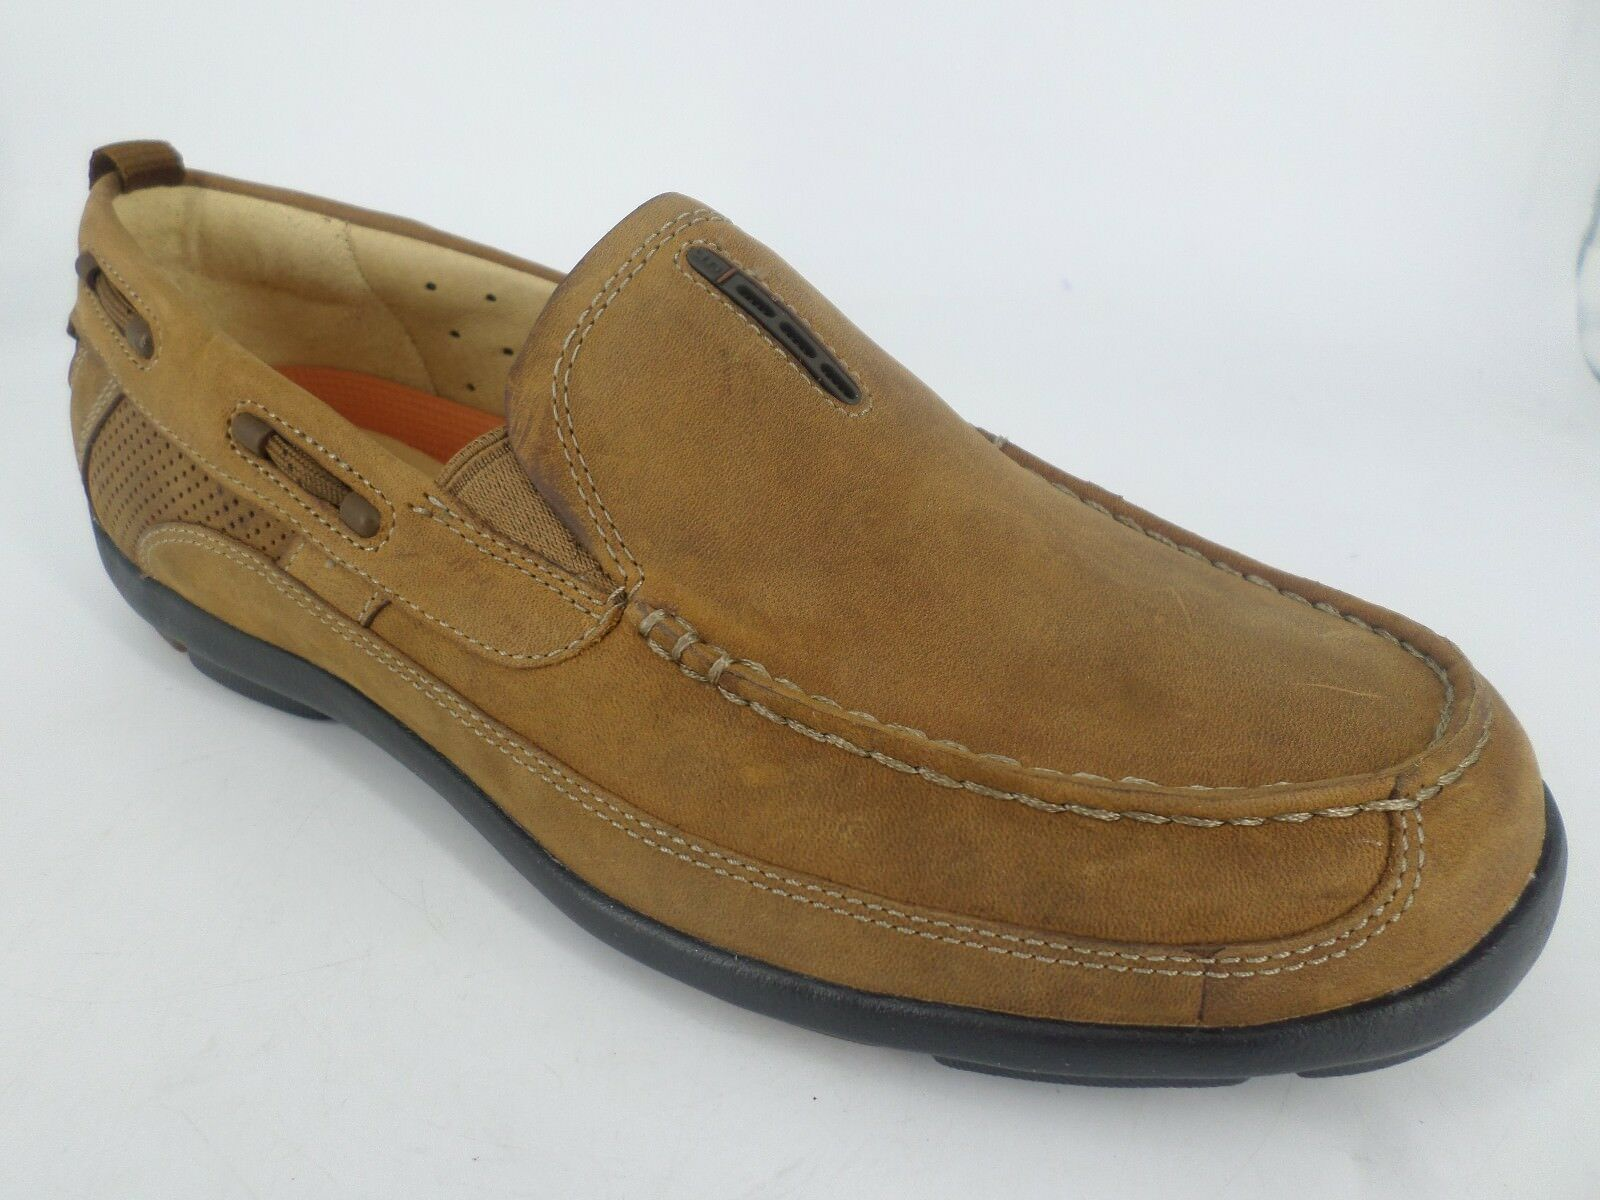 Clarks Mens Unstructurot Slip On schuhe braun   UK 7 EU 41 LN40 88